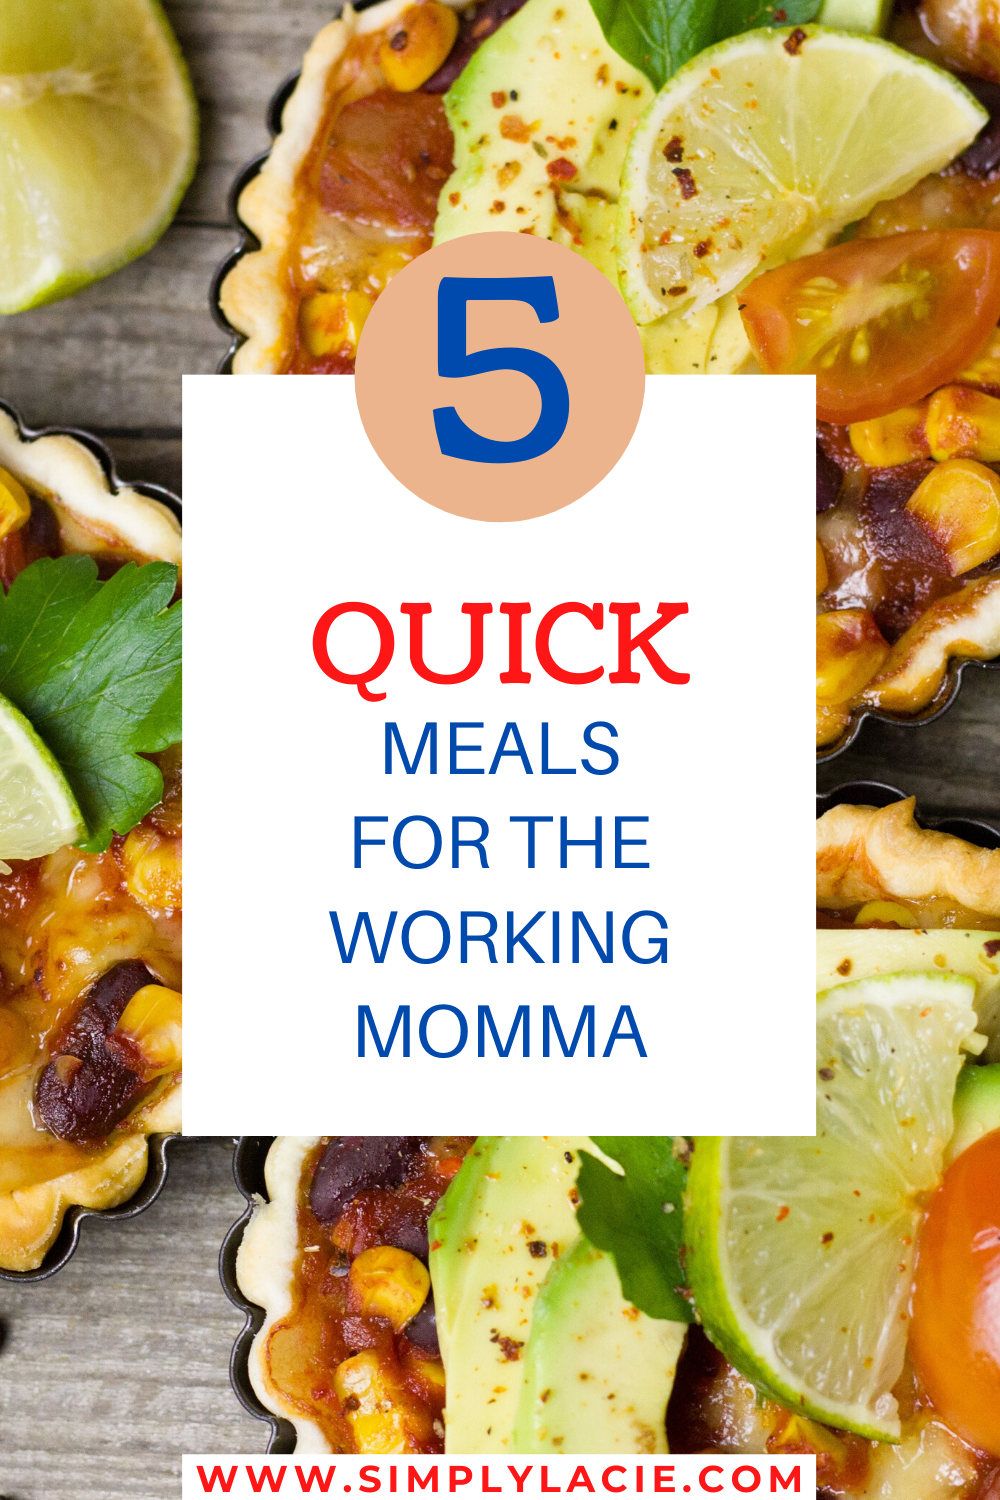 Here is a list of five of my quick go-to weekday meals. #quickmeals #workingmomma #motherhood #goodeats #dinner #familydinner #cooking #momlife